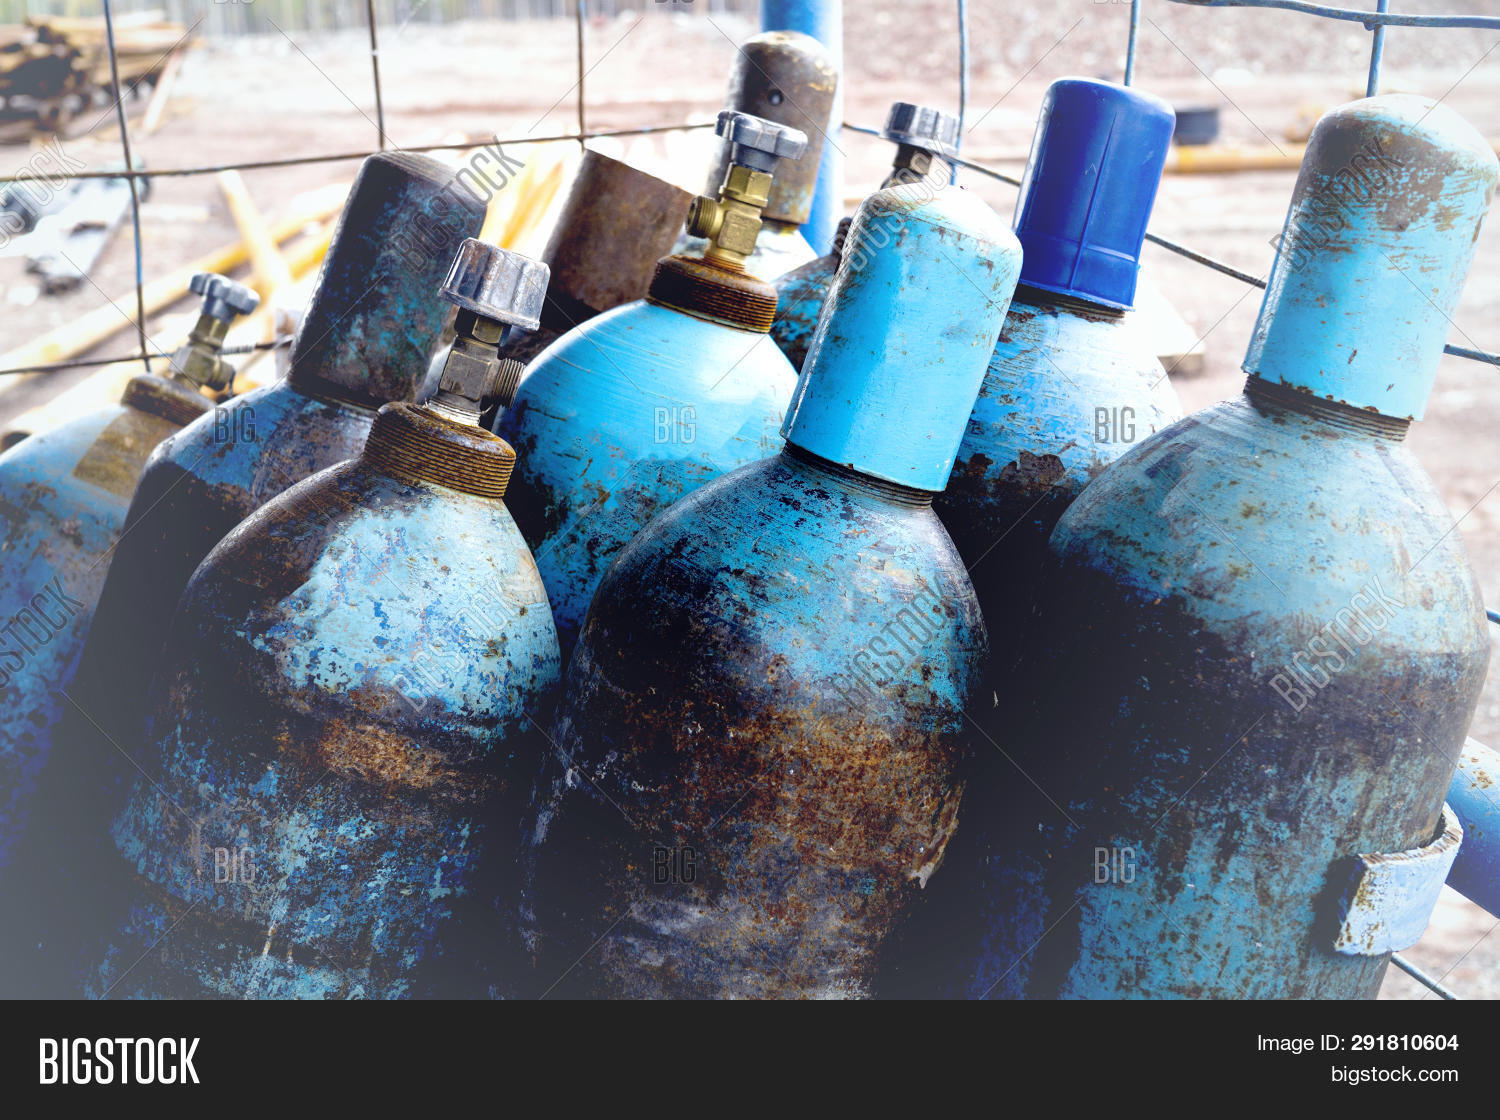 Natural Gas Cylinders  Image & Photo (Free Trial) | Bigstock